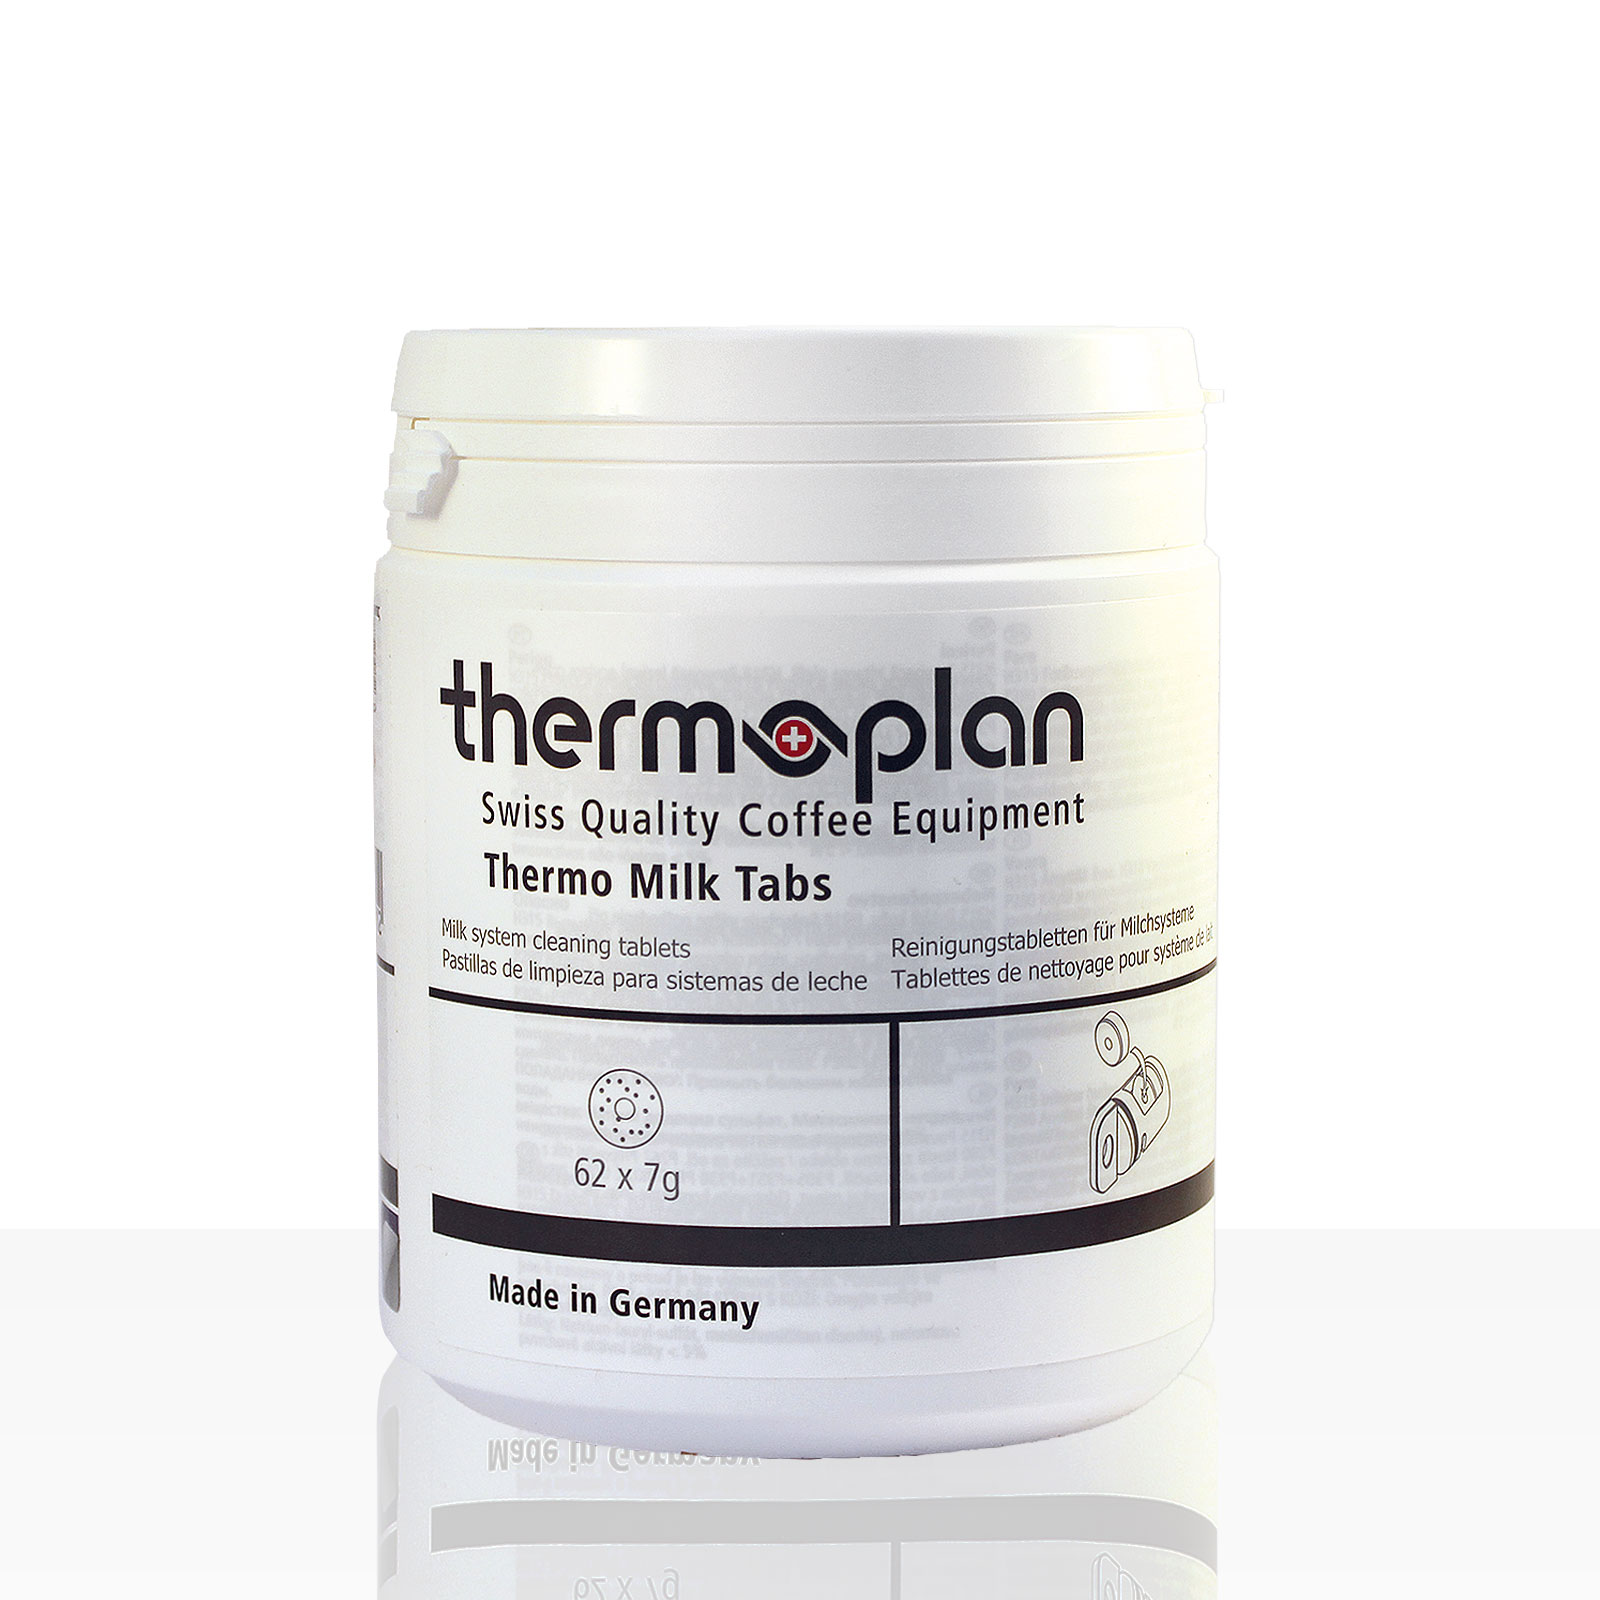 Thermoplan Thermo Milk Tabs Reinigungs-Tabletten 62 x 7g